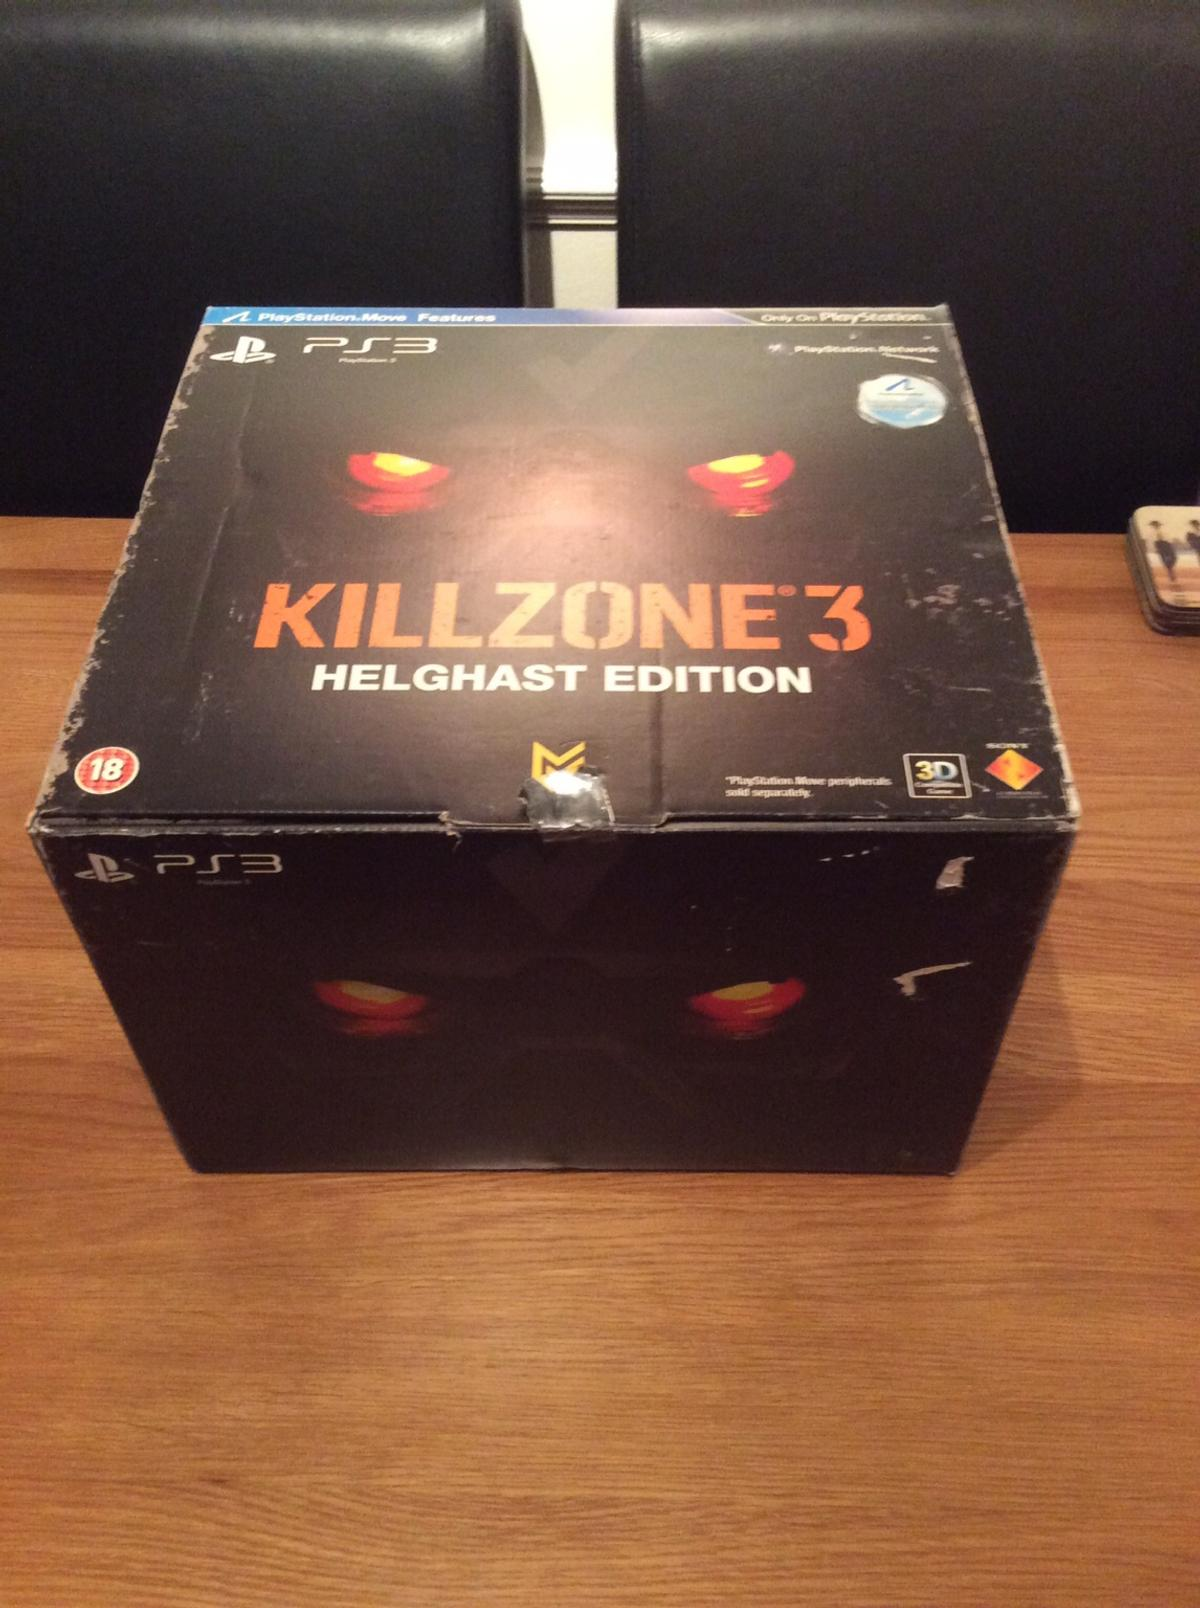 Killzone 3 helghast edition for PS3. Brand new never been played only slight wear and tear on box where it has been opened once.